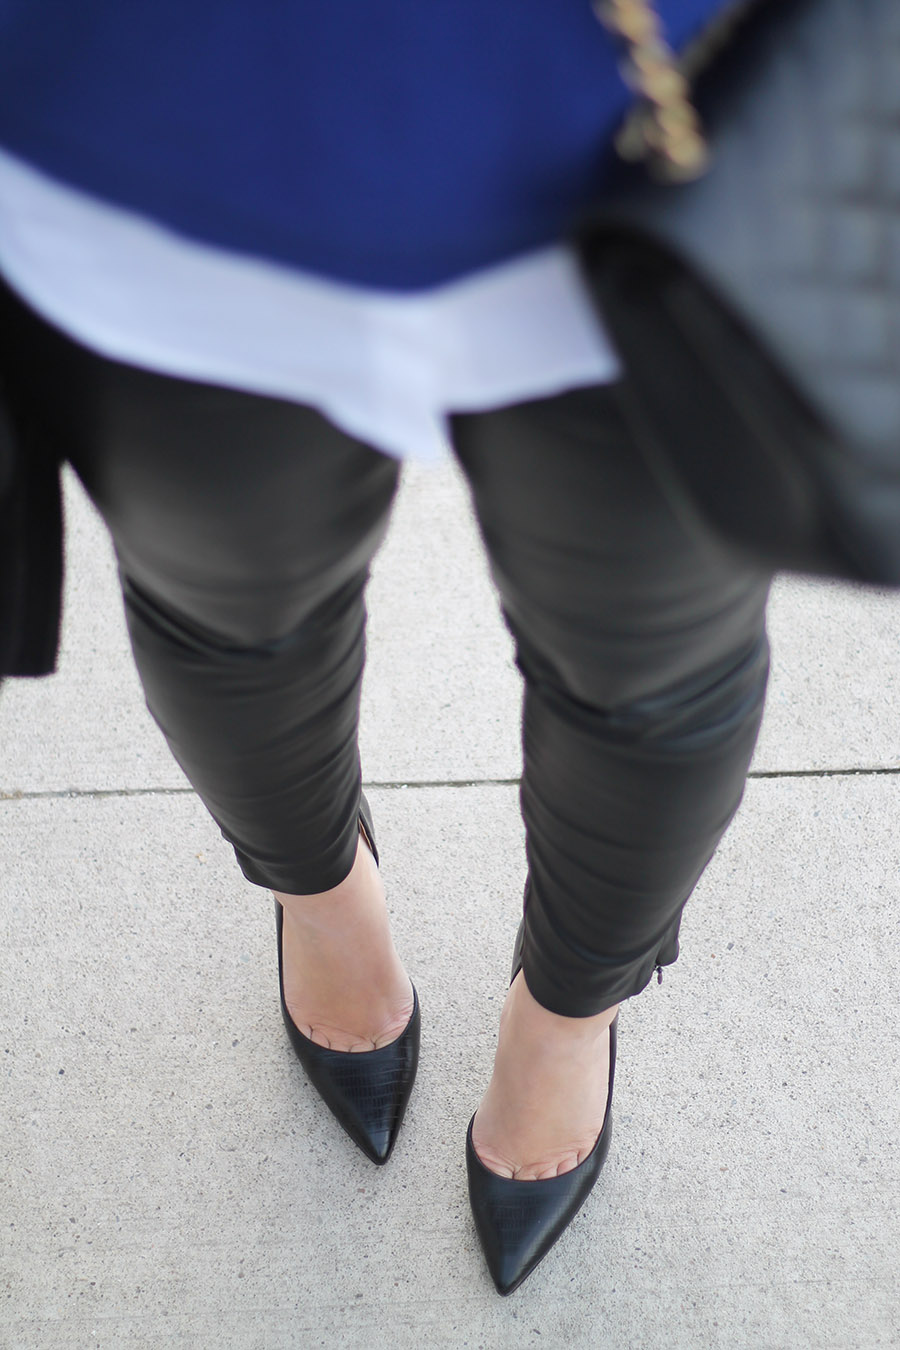 Faux Leather Pants, Classic Black Pumps, How To Wear Leather Tights